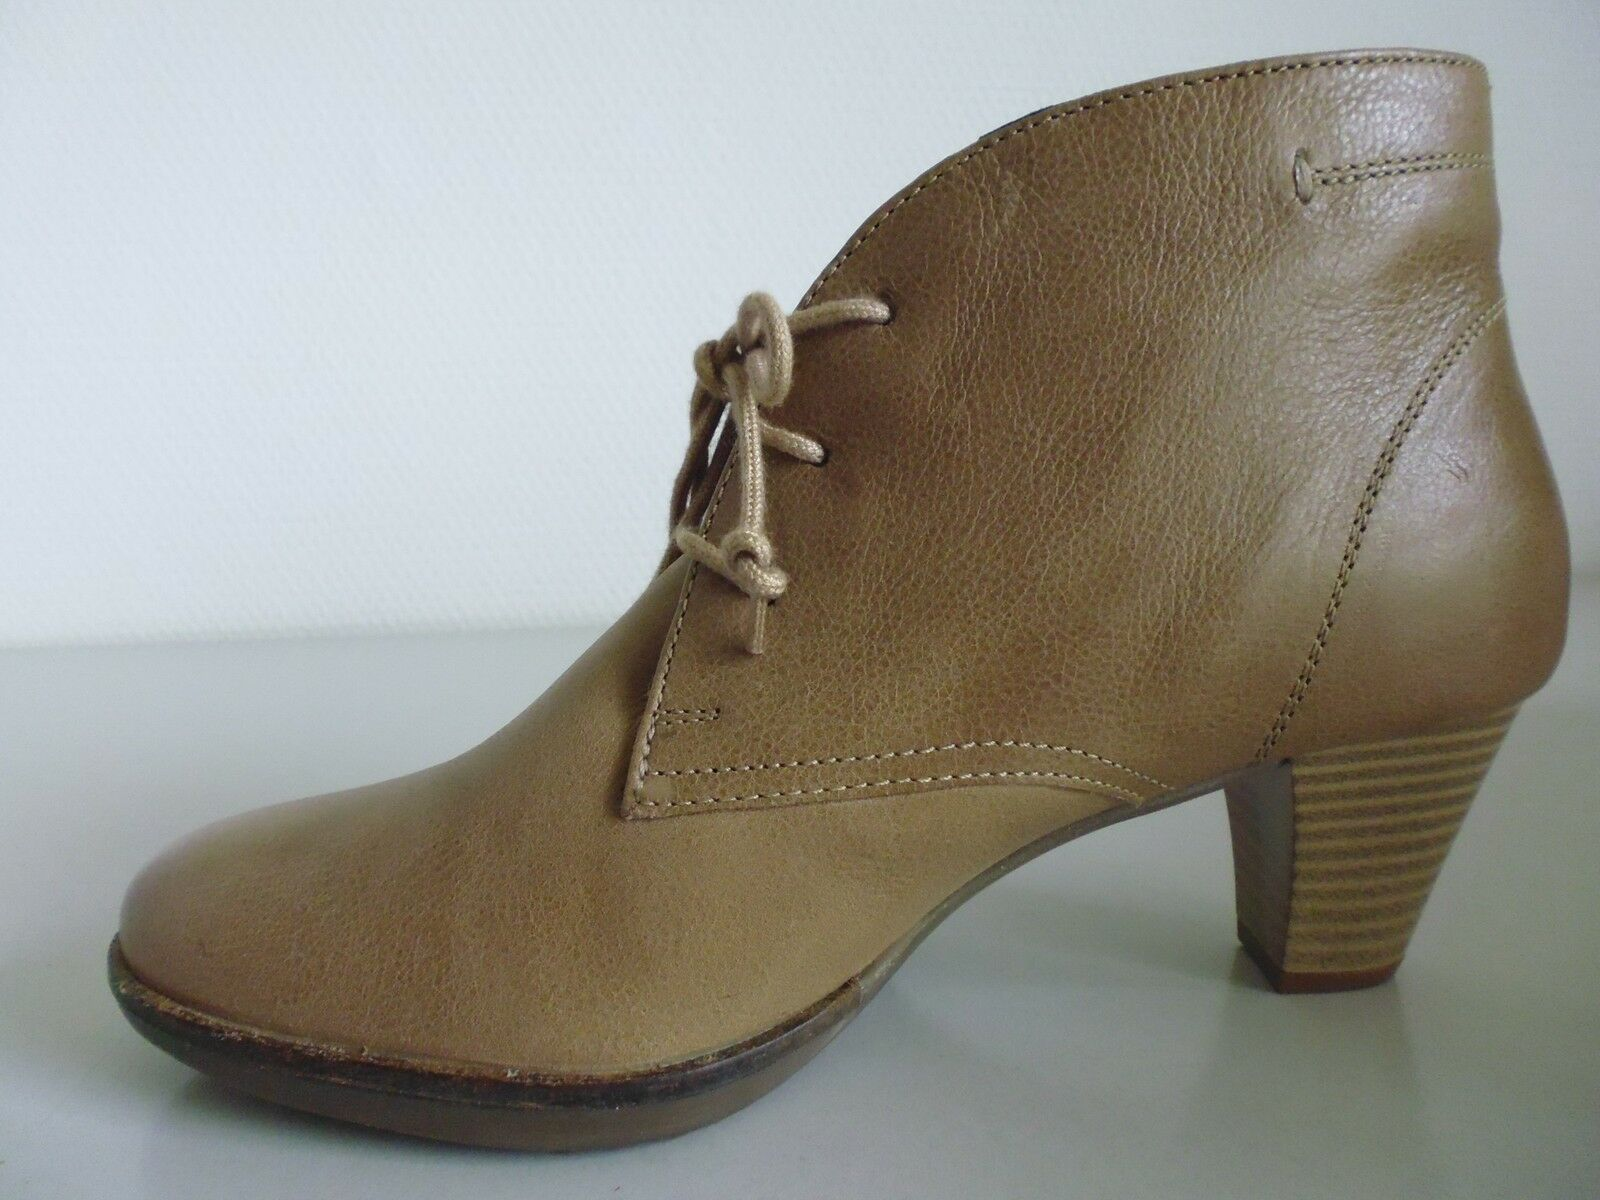 Chaussures Chaussures Femmes Bottes Bottines Cuir UNO DUE tre taupegr. 41 7,5